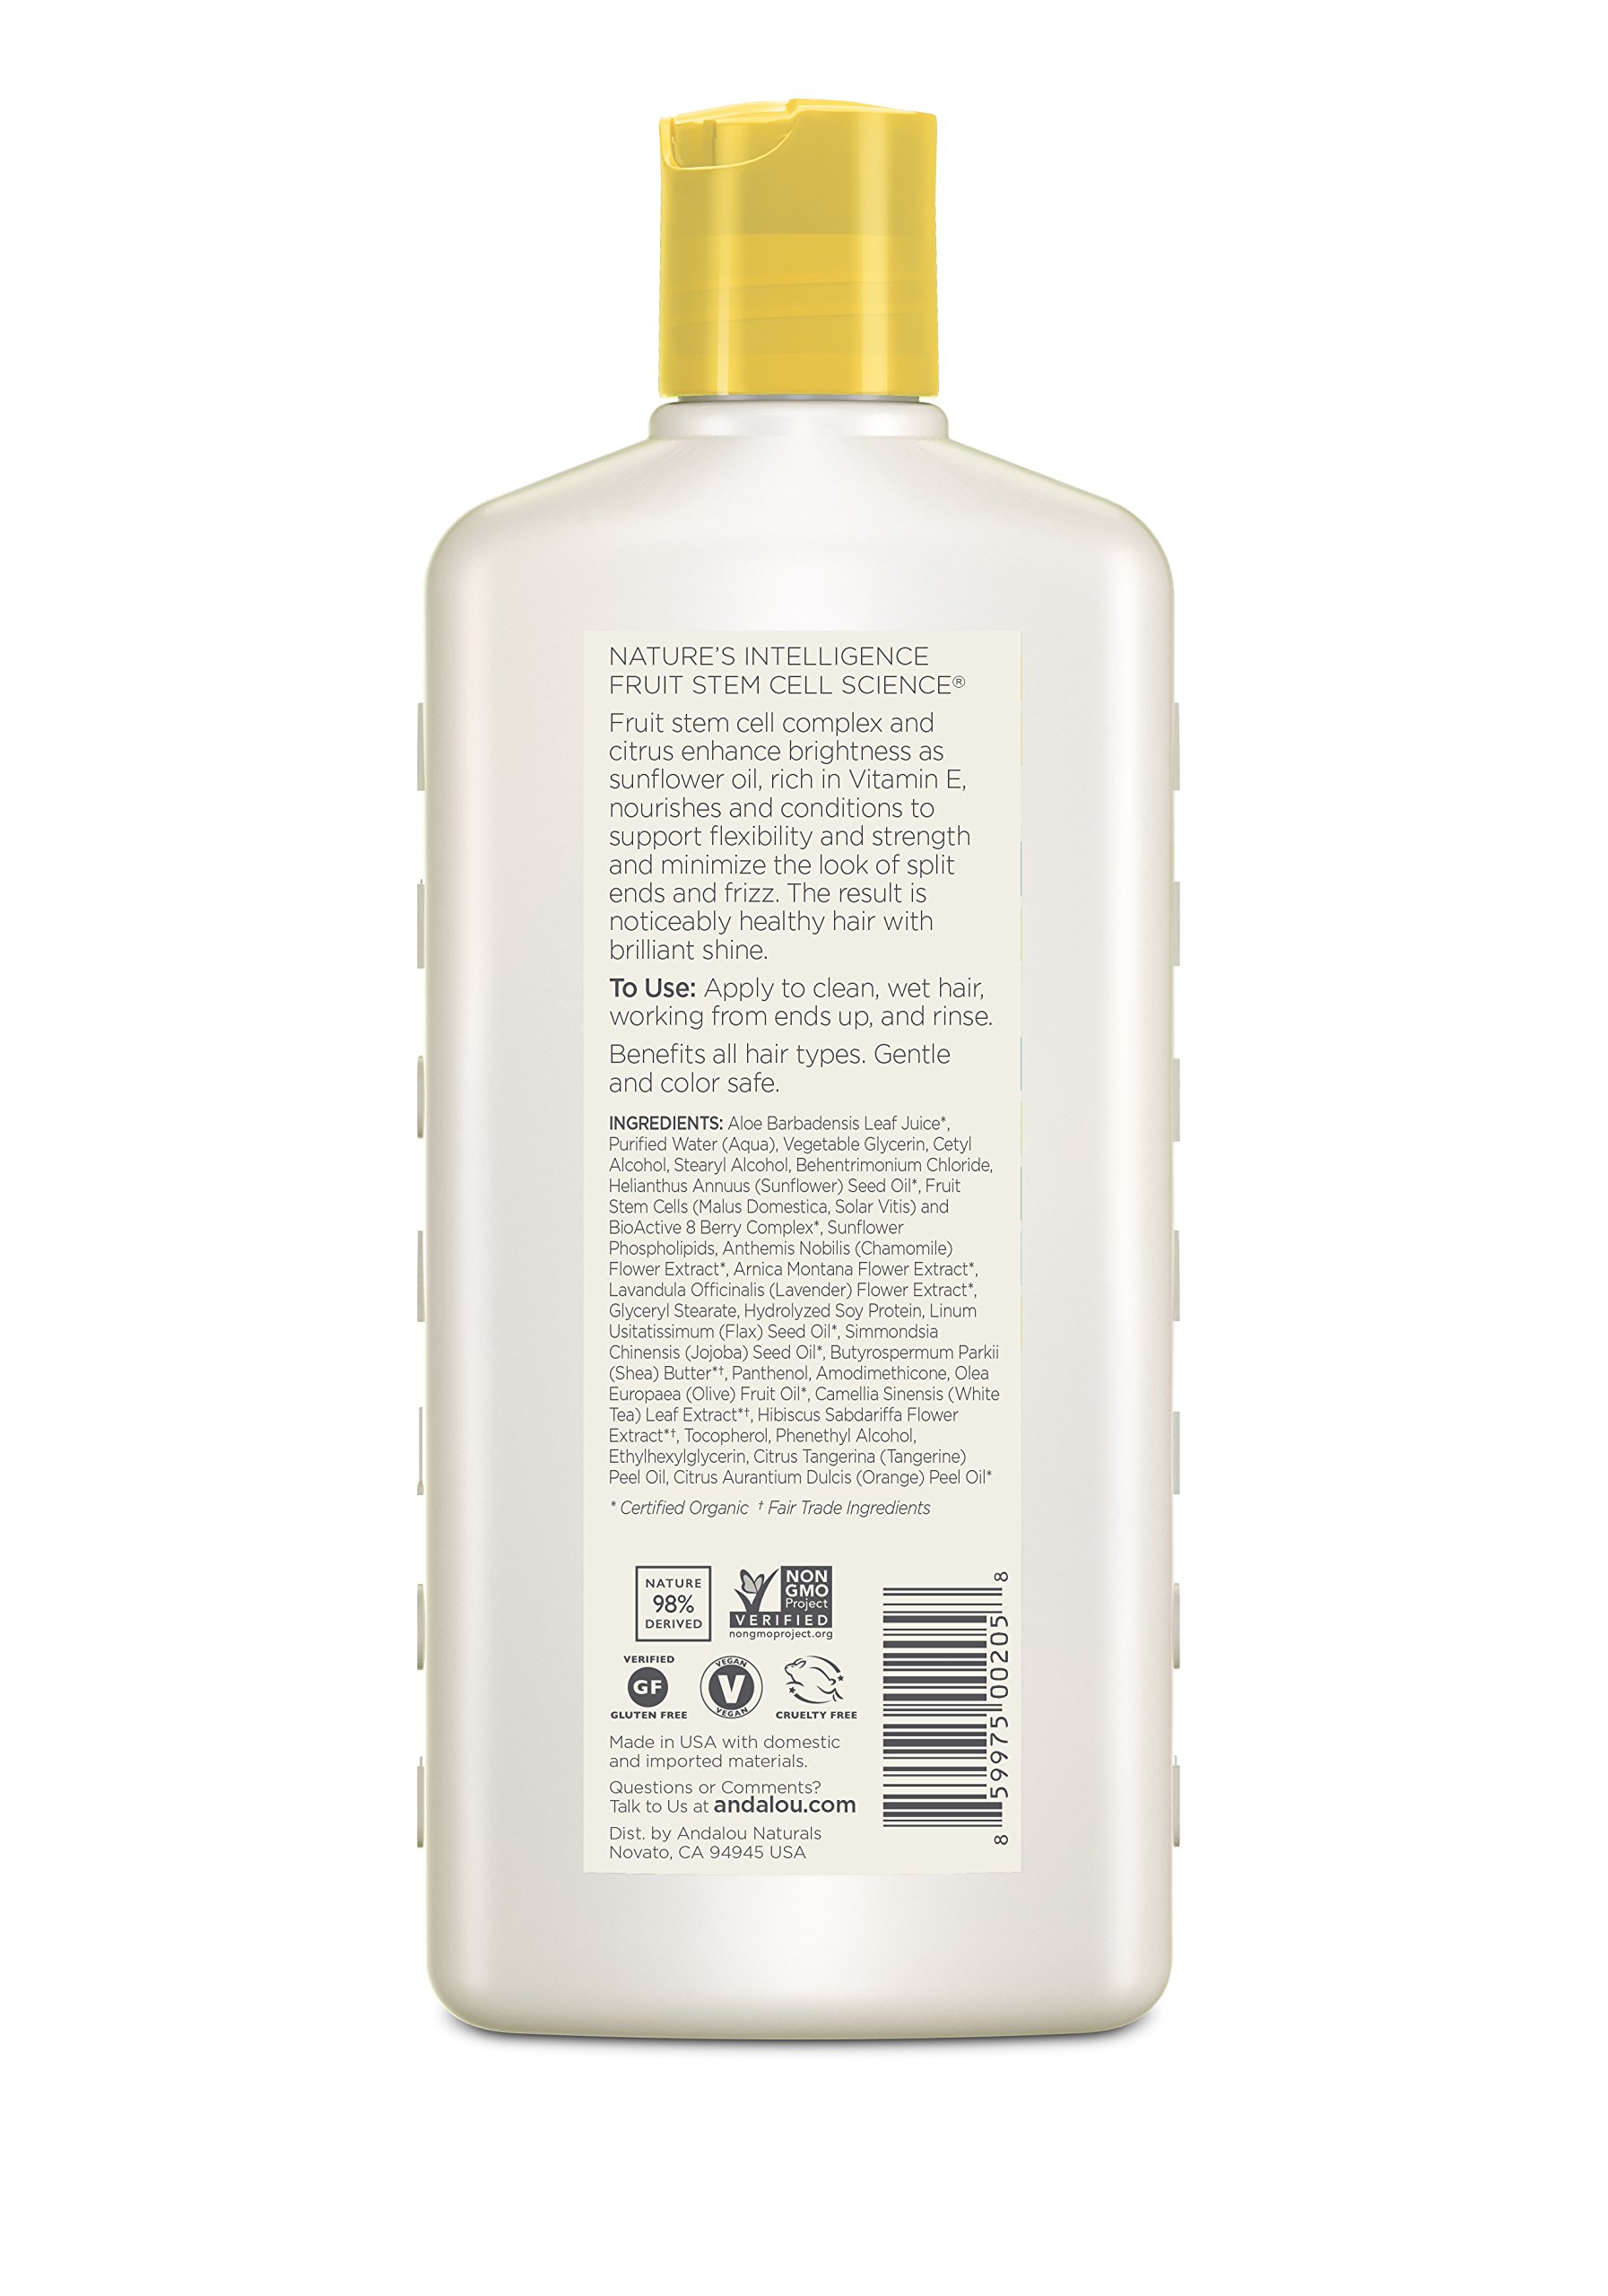 Andalou Naturals Sunflower & Citrus Brilliant Shine Conditioner, 11.5 oz, Helps Give Hair Smooth Shine & De-Frizz Split Ends by Andalou Naturals (Image #2)